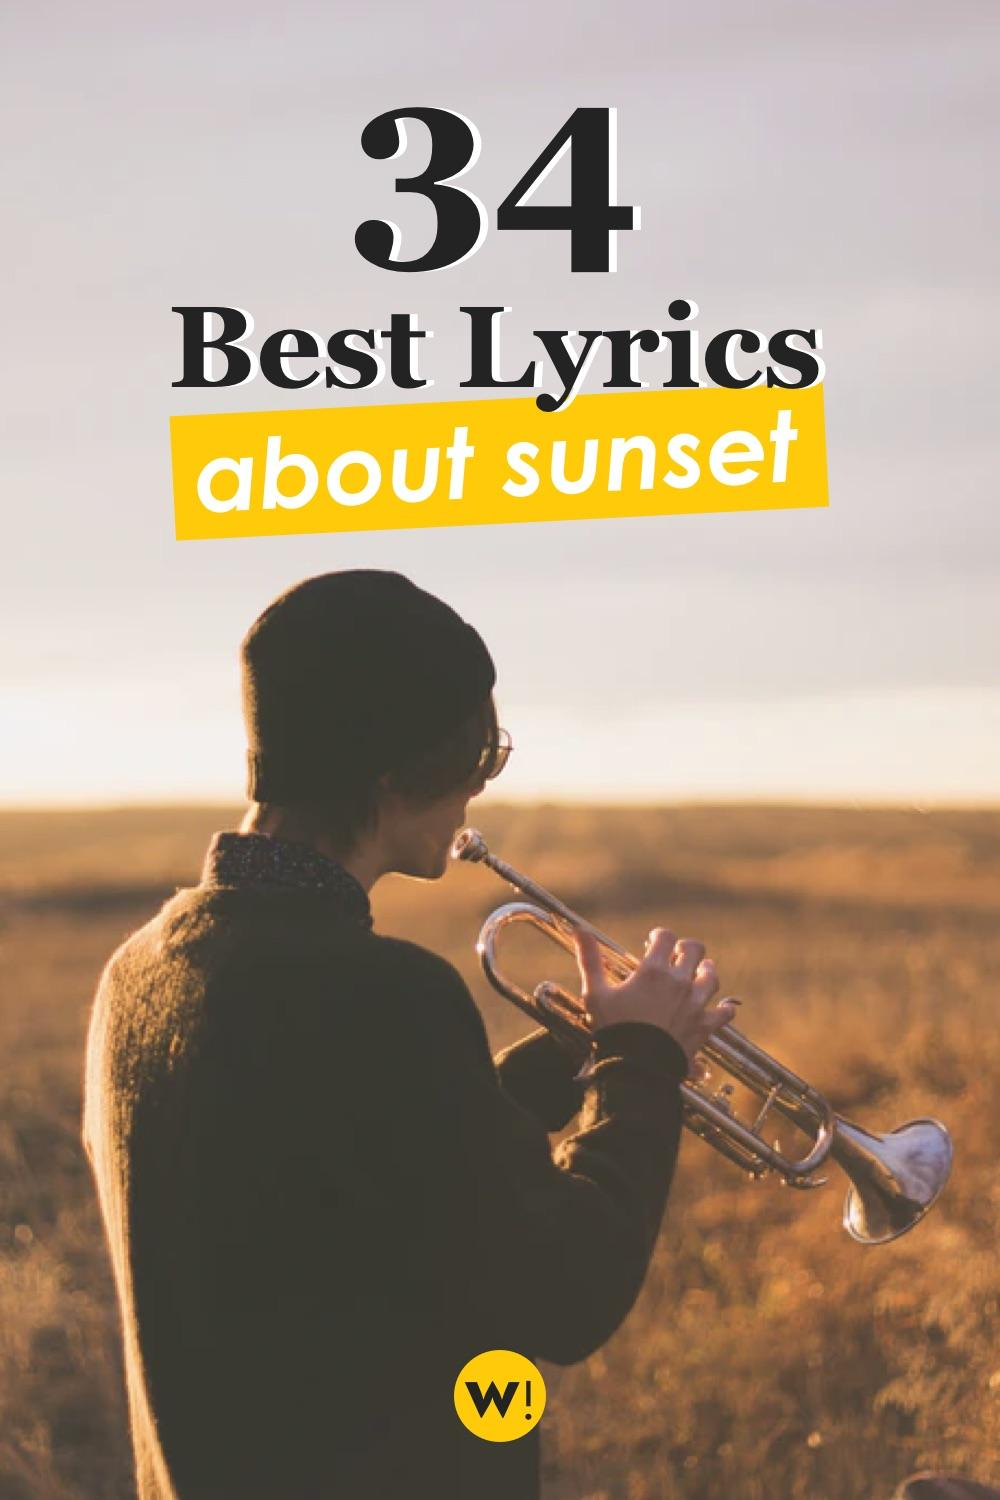 So you're a music lover, uh? Instead of regular sunset quotes, you want sunset quotes from songs? Well, you're in luck. I have 34 sunset lyrics quotes waiting for you! lyric quotes | song lyric quotes for instagram captions | beautiful song lyrics quotes |song lyric captions |sunset song lyrics |sunset song quotes